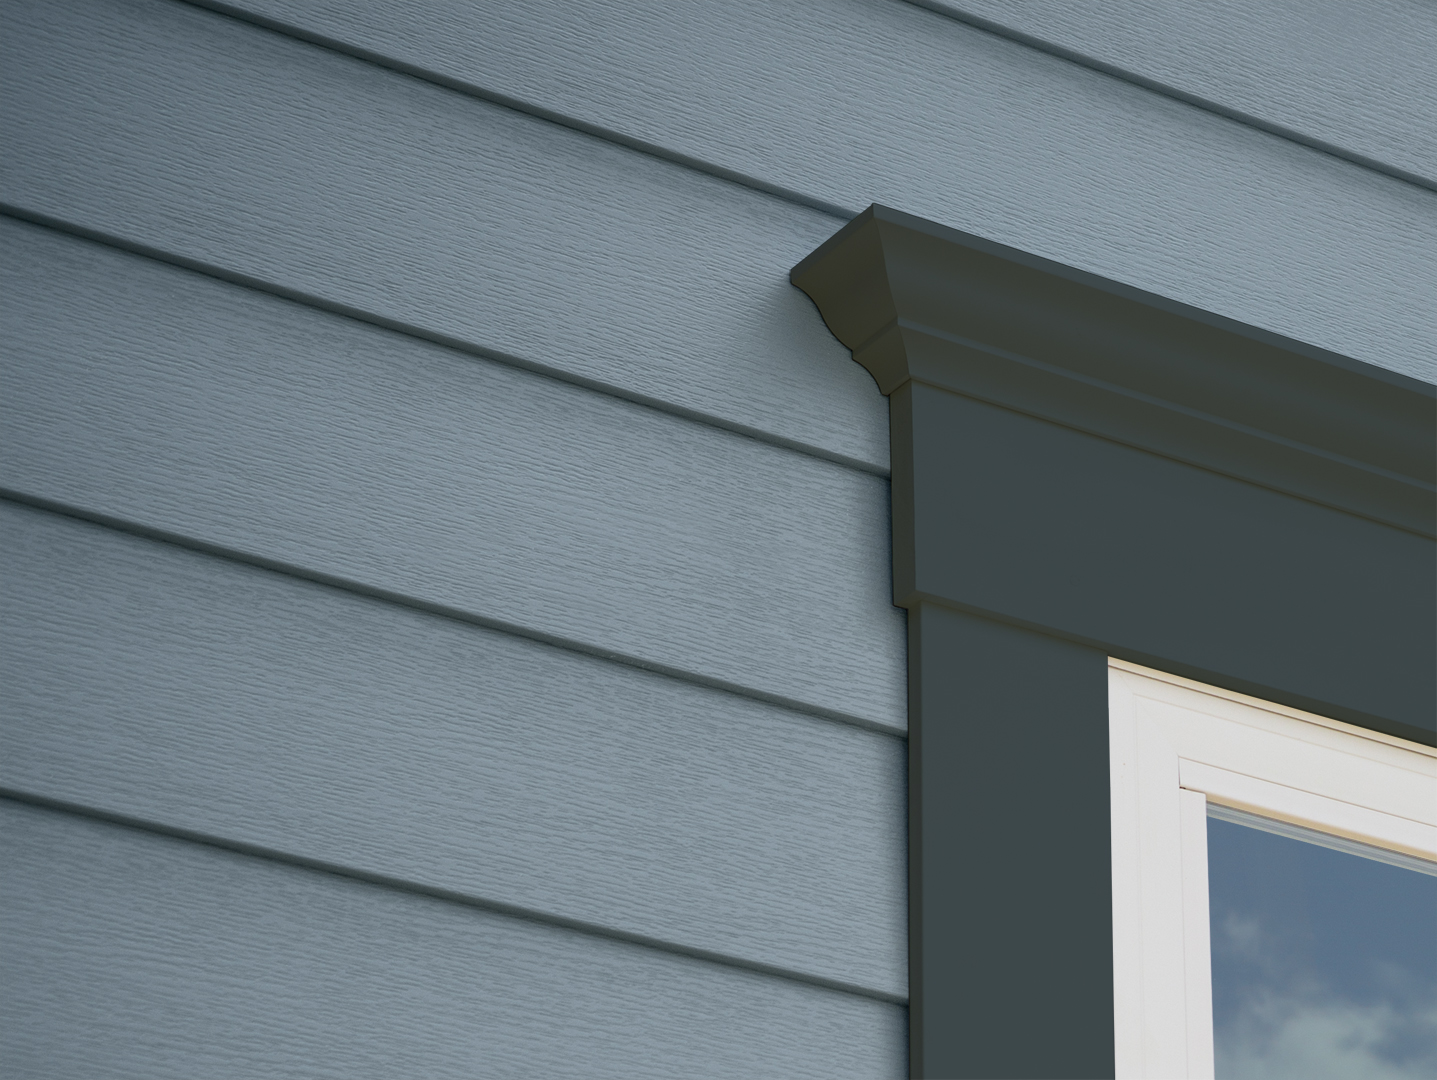 Celect Dublin window closeup - colorized siding OCEANA trim GROVE_web.jpg